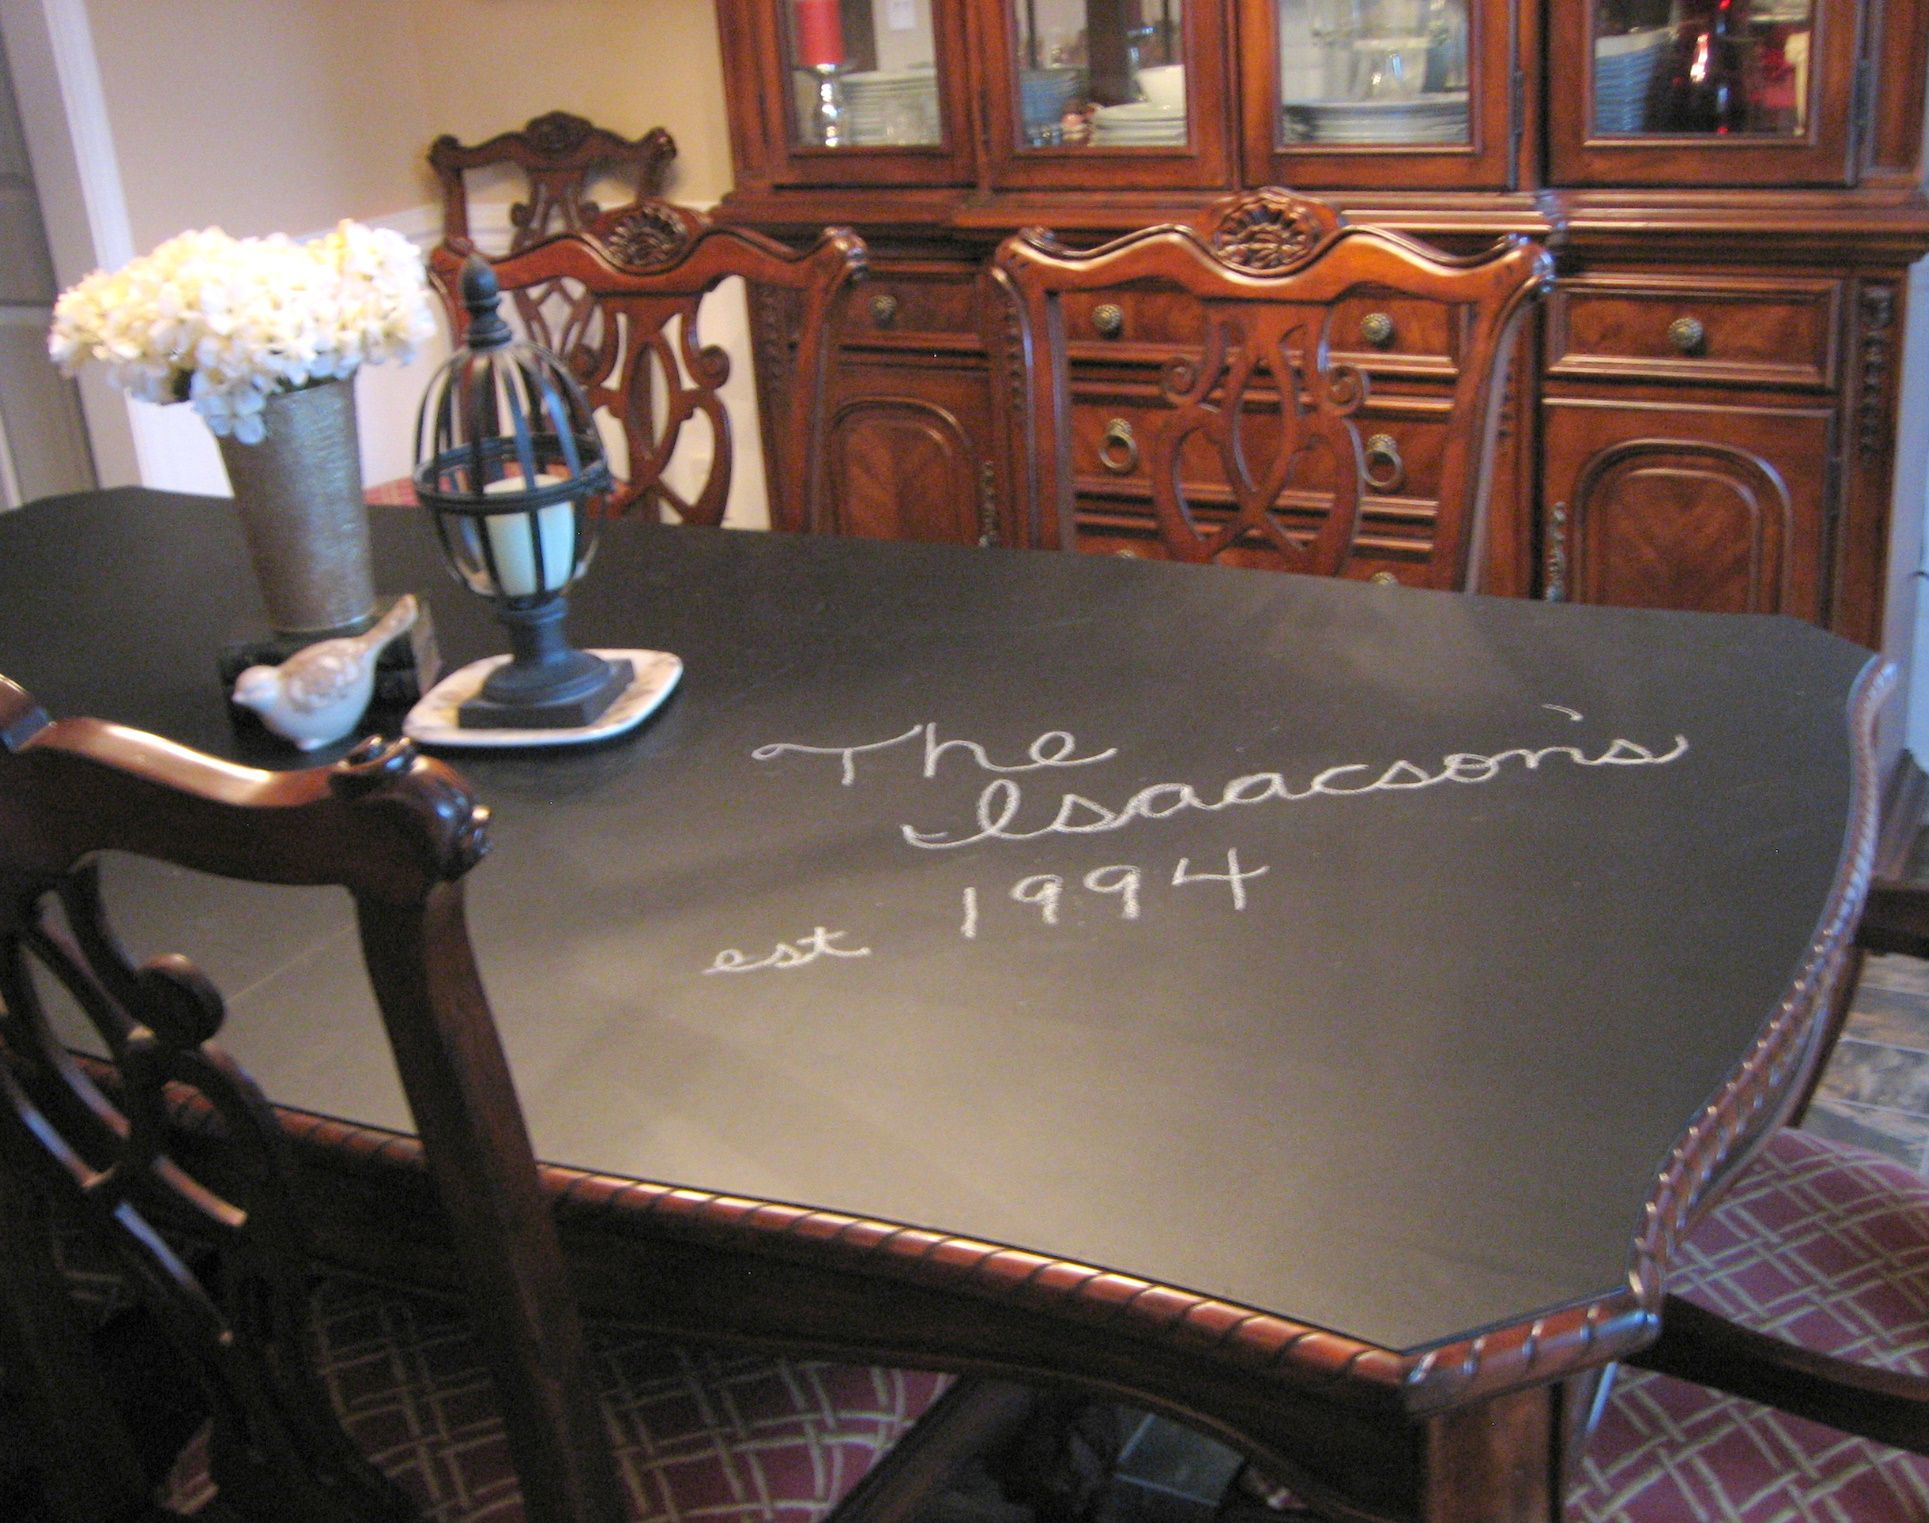 Thinking Of Doing This To Our Stained Scratched And Otherwise Discoloured Dining Room Table Dont Want Have Fuss With Re Painting The Legs Too